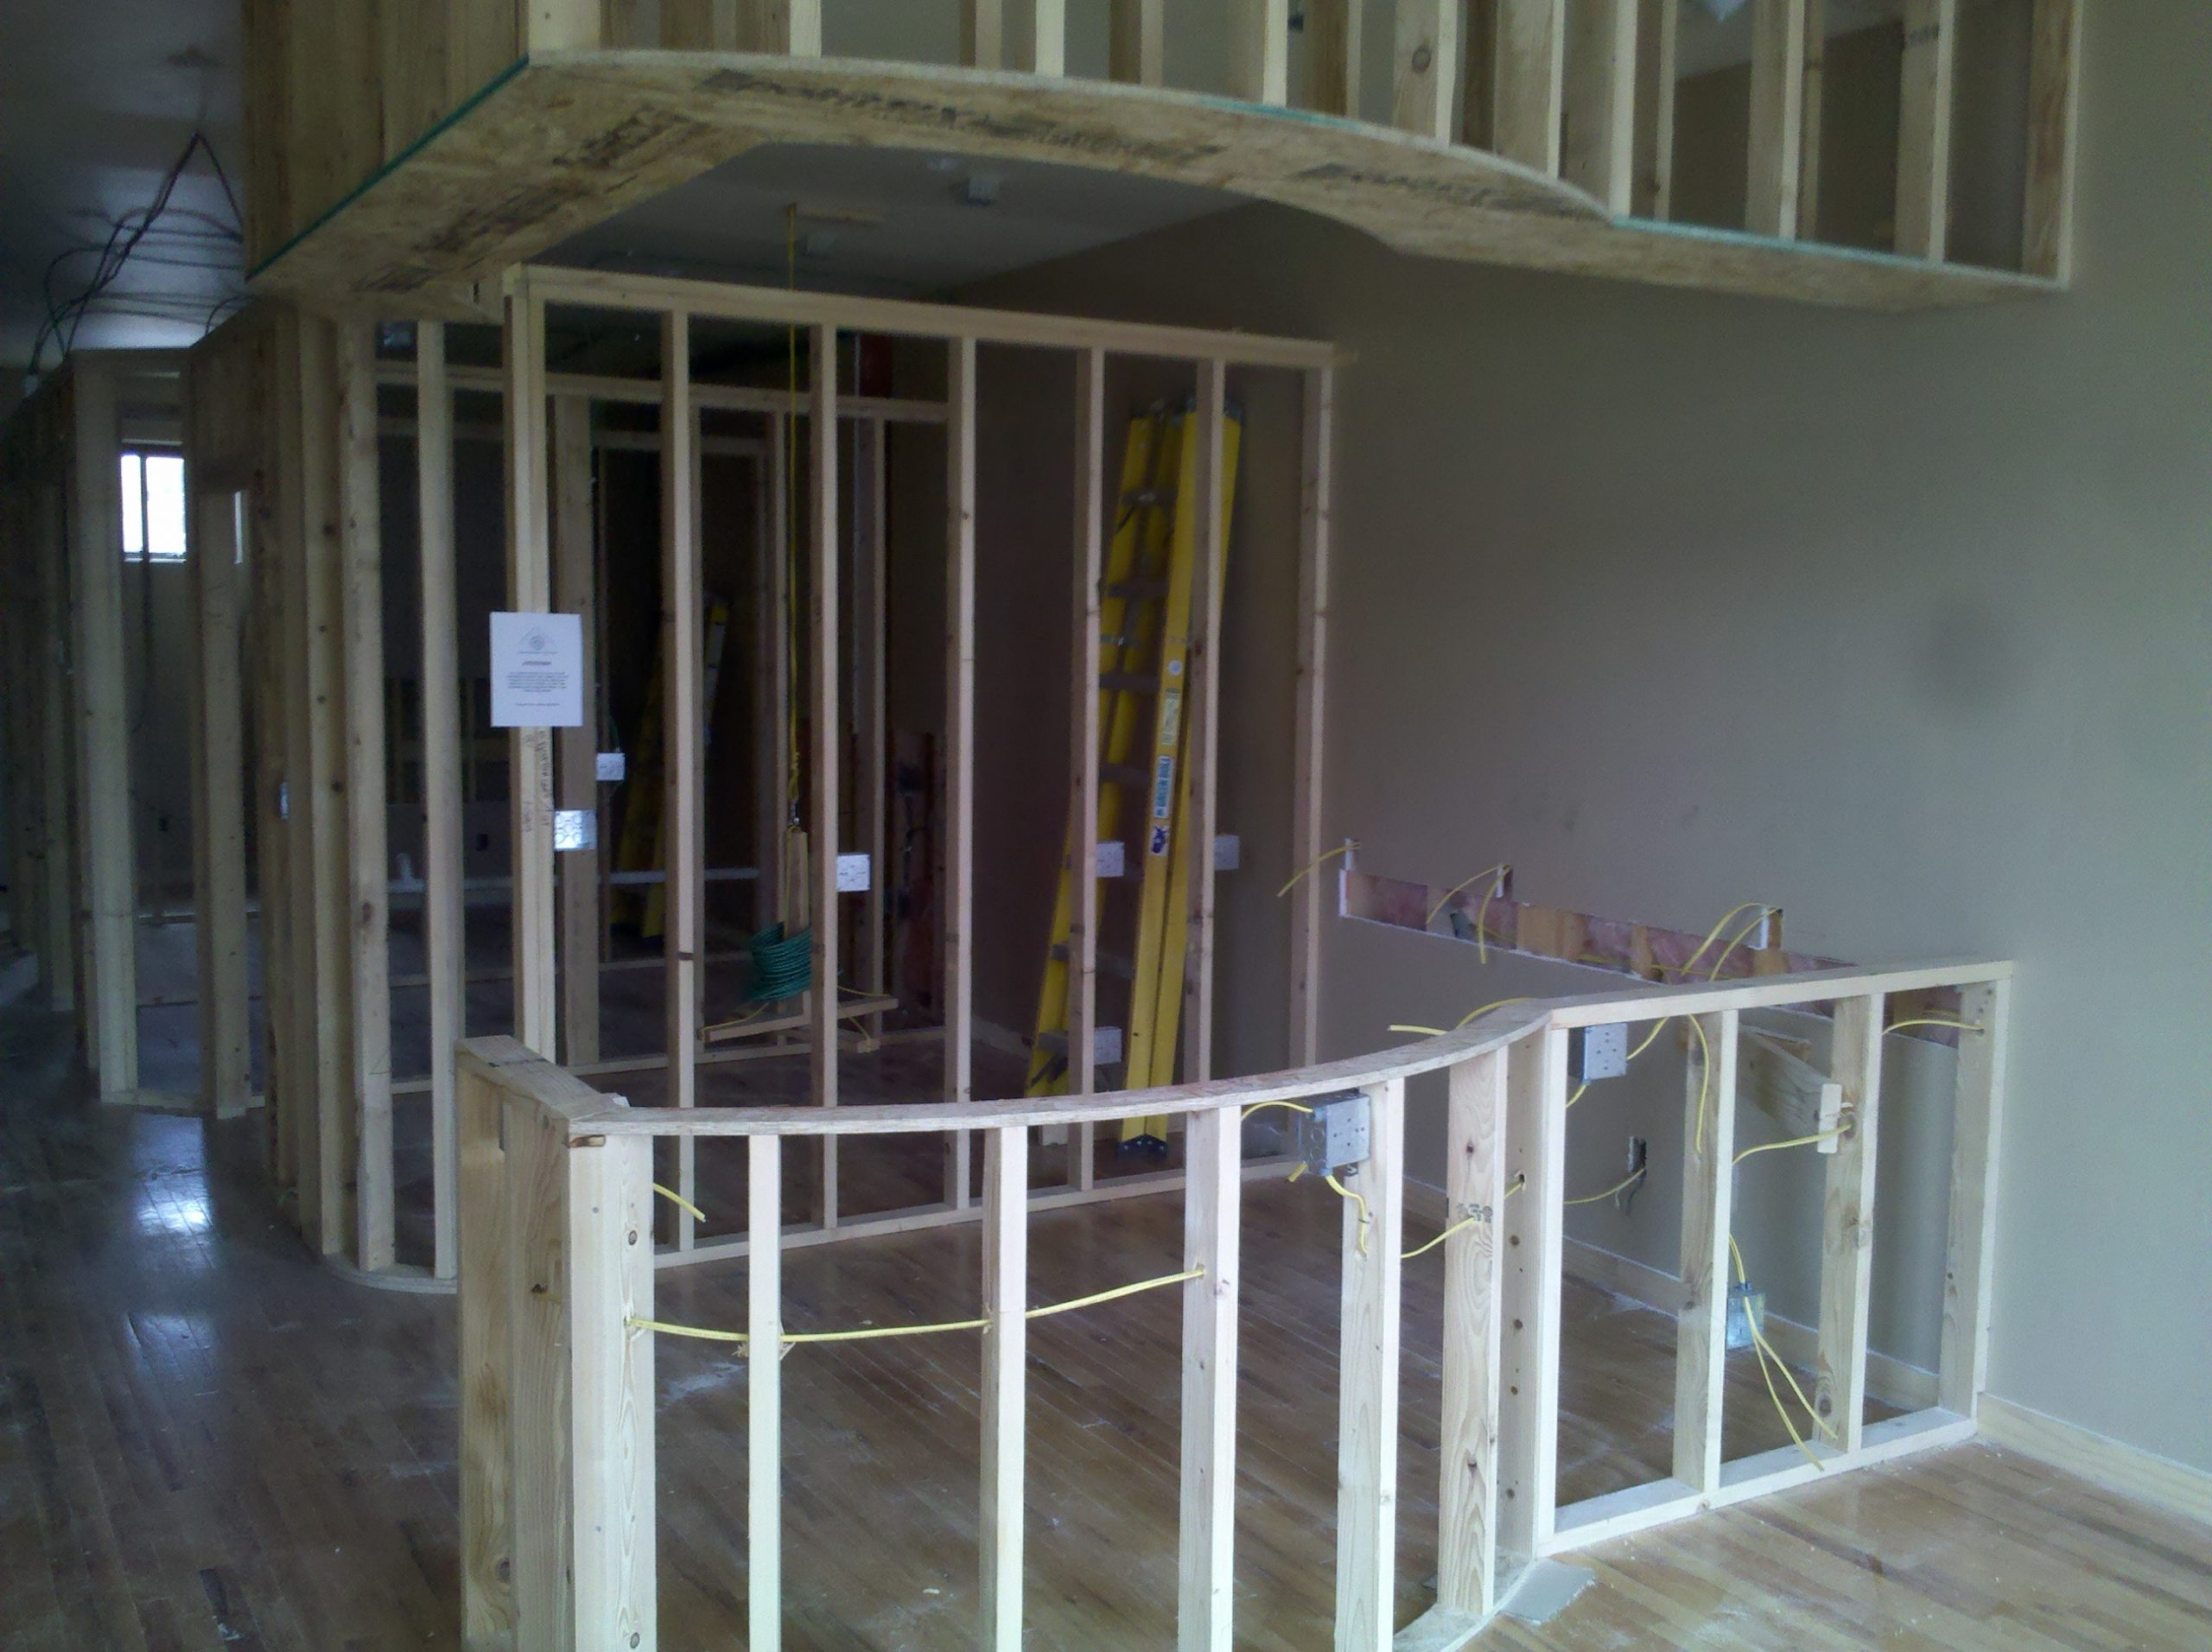 Crested Butte Dentist Office remodel - Somrak Concept Structure - Commercial Construction